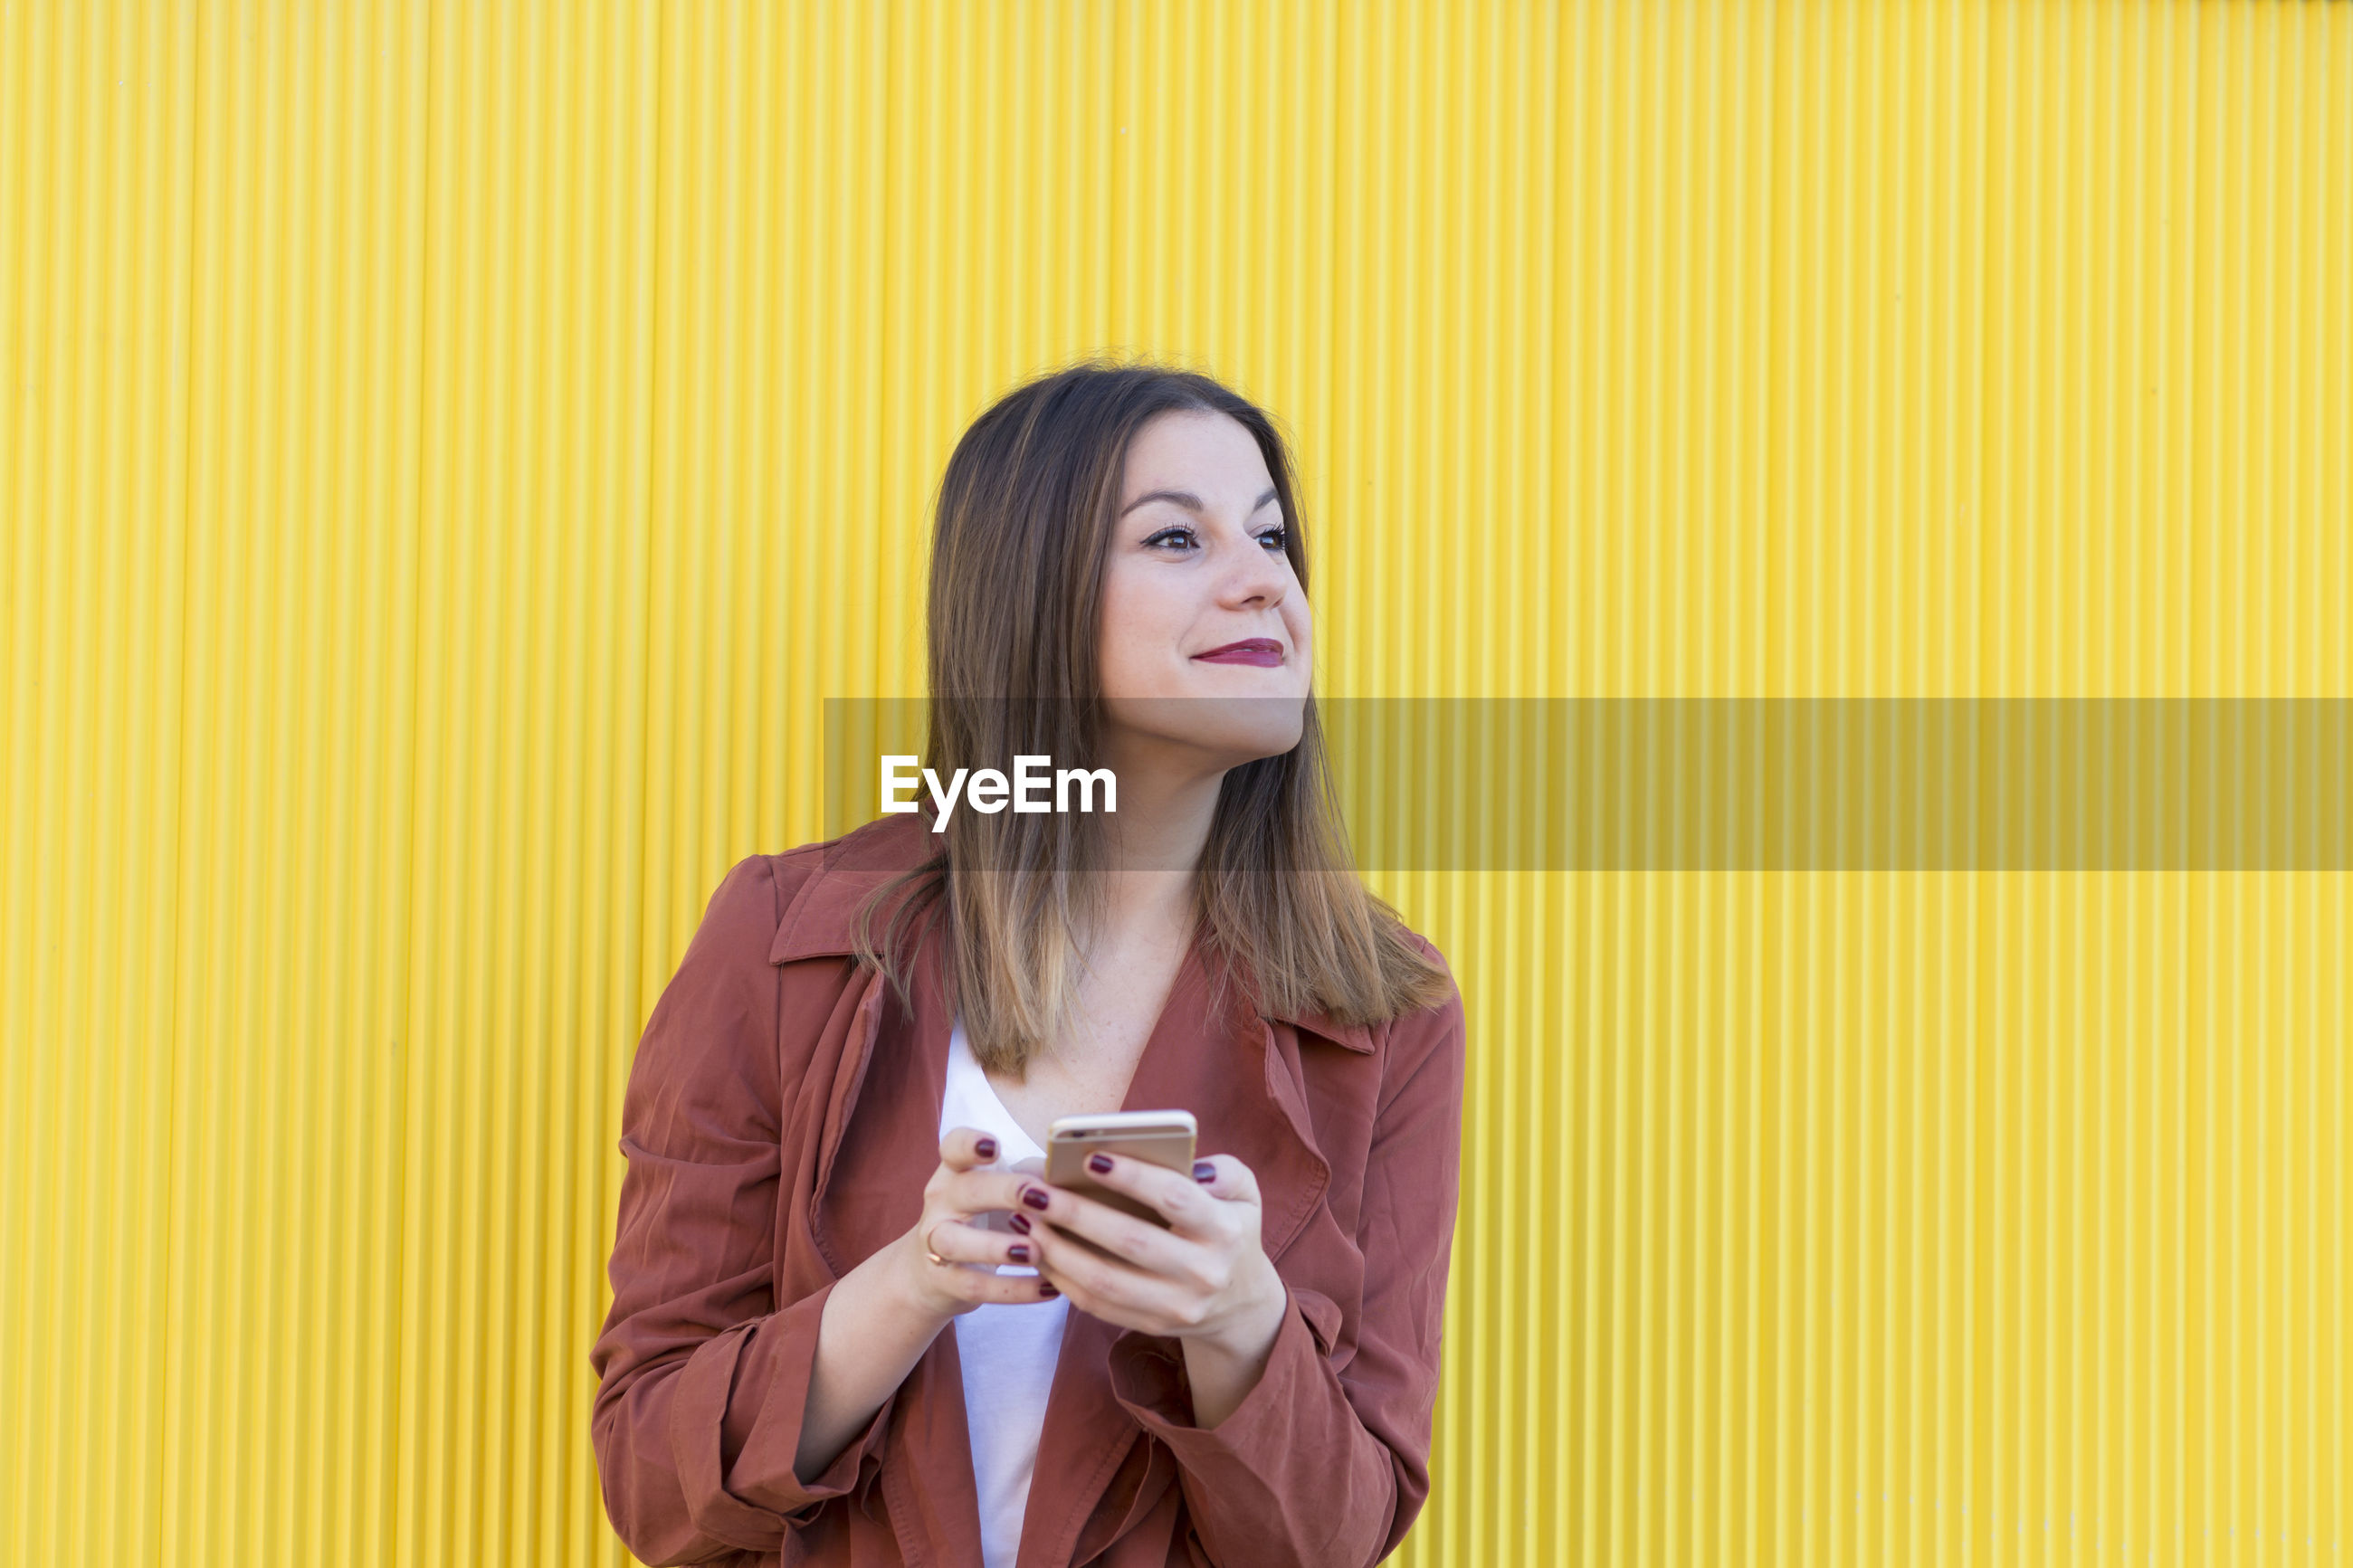 Fashionable young woman using mobile phone while looking away against yellow wall